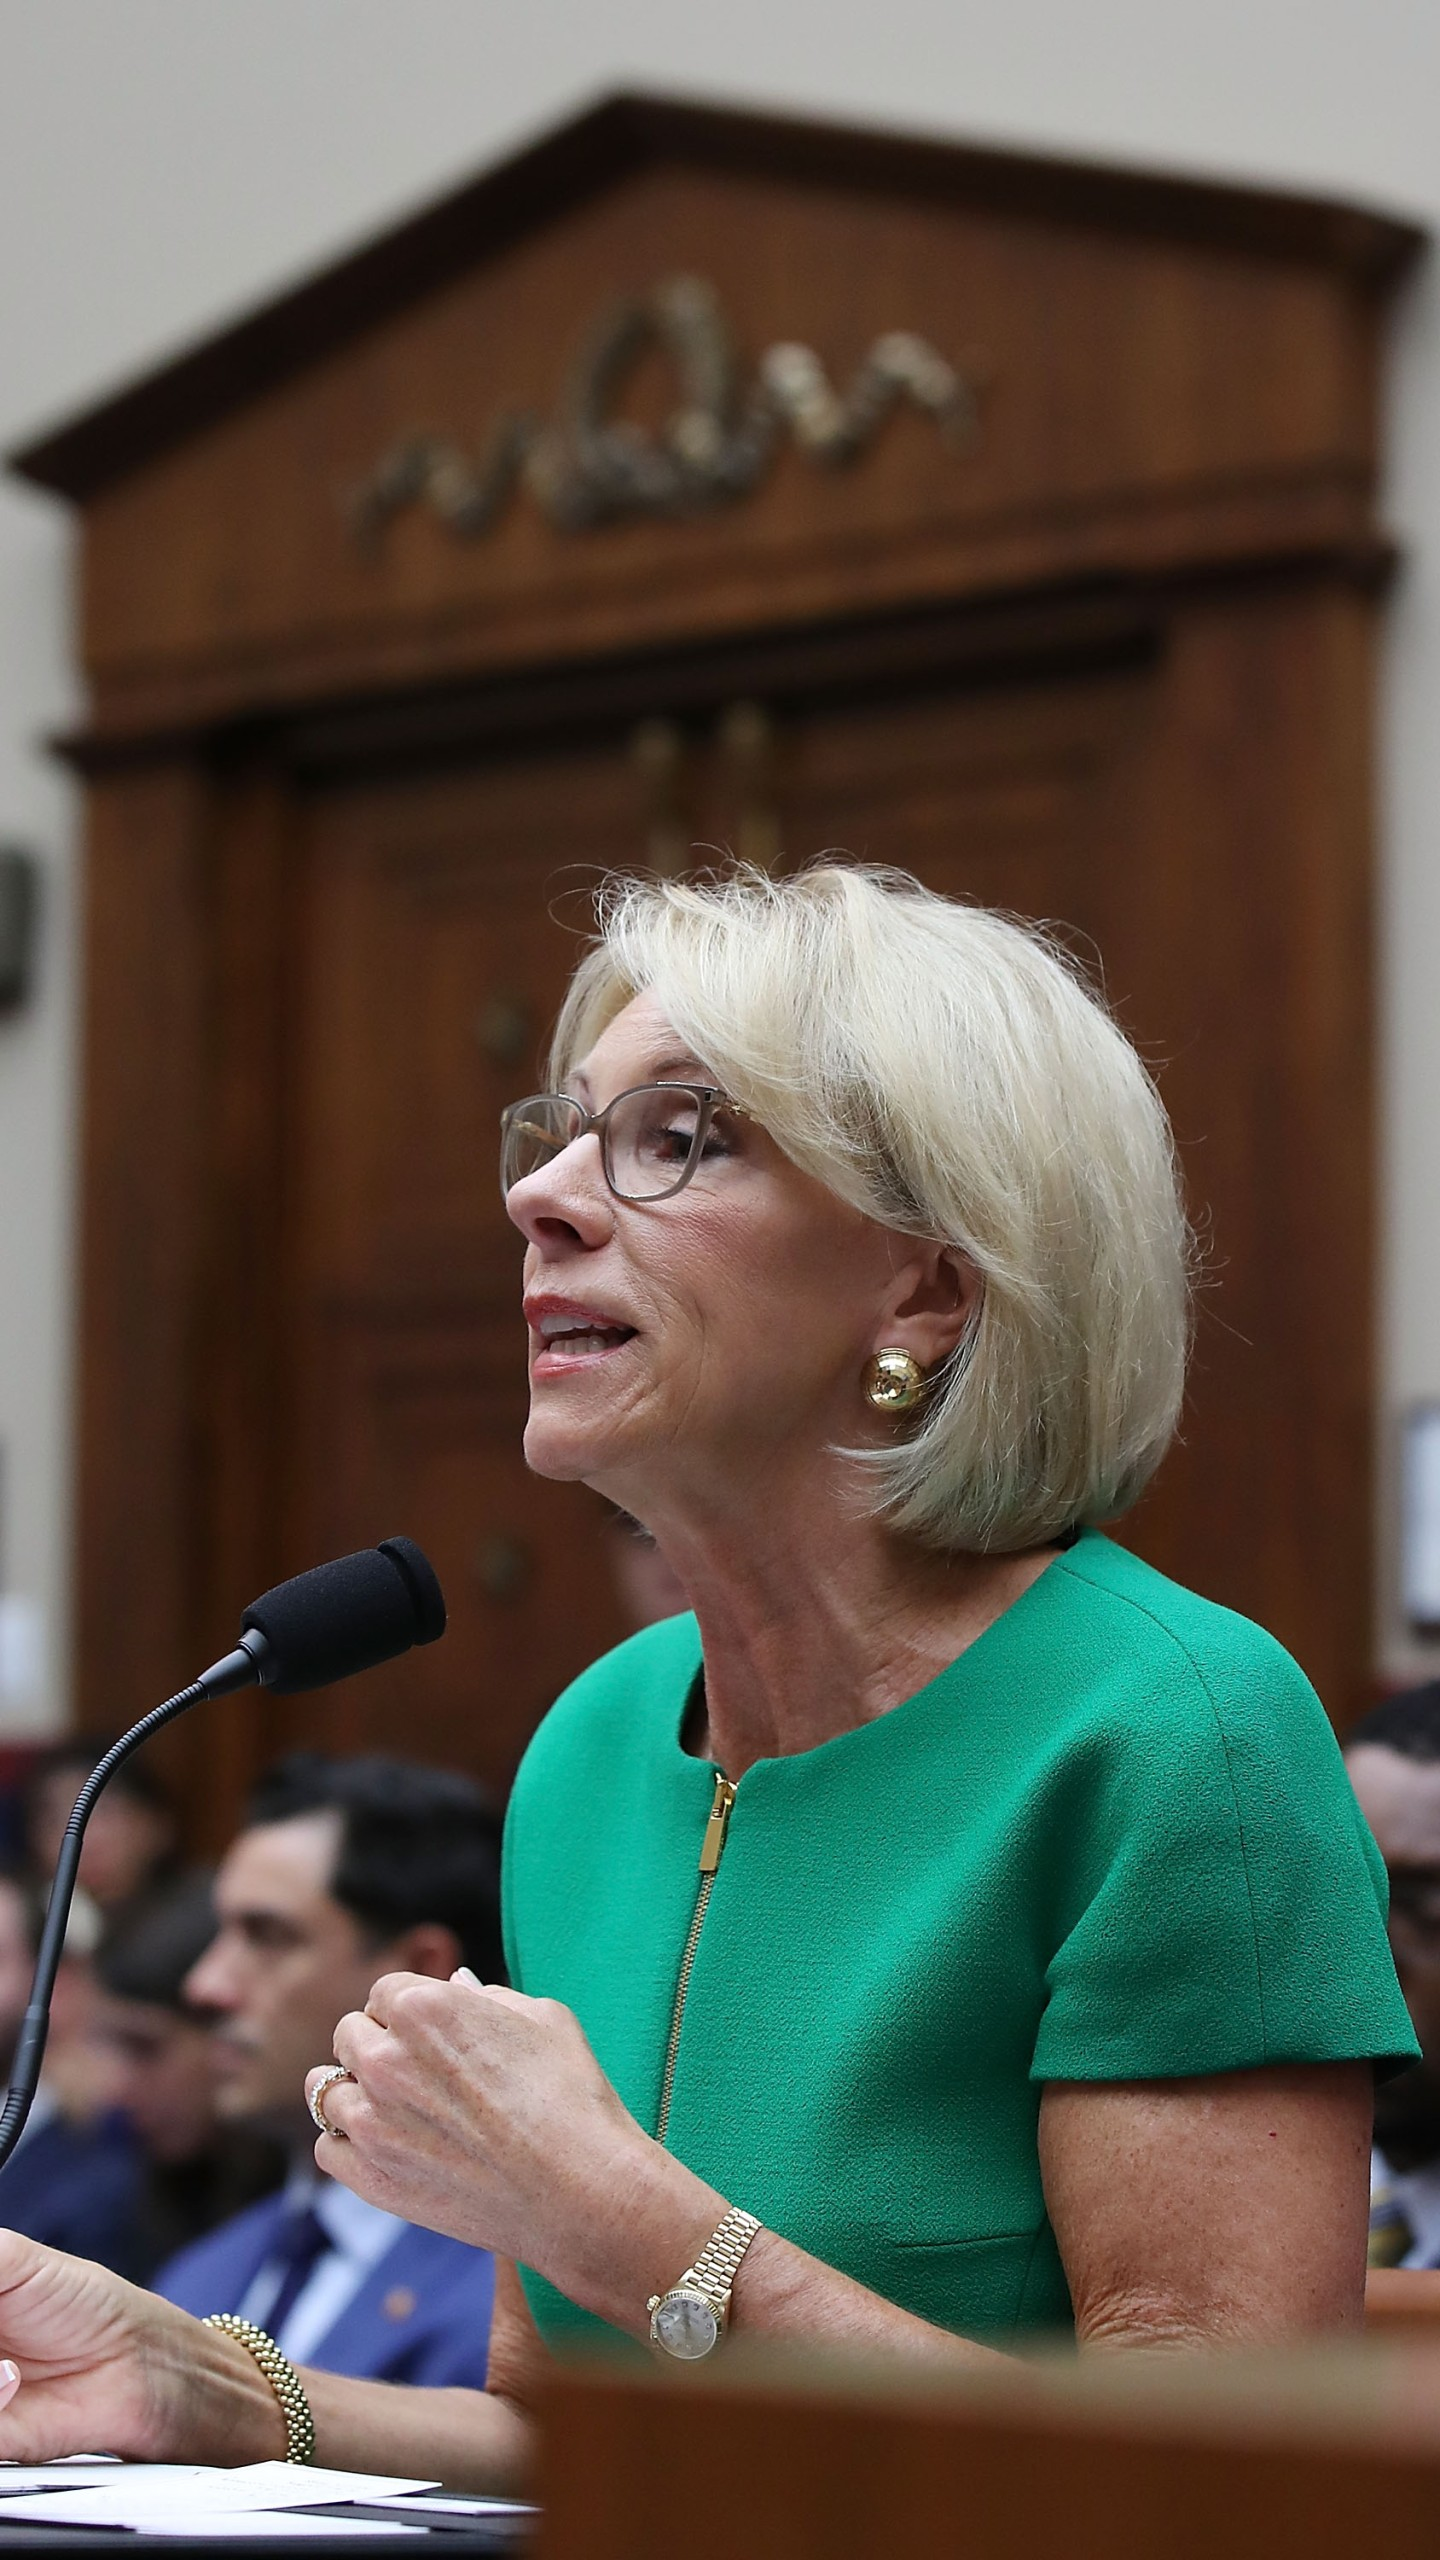 Education Secretary Betsy DeVos testifies during a House Education and the Workforce Committee hearing on Capitol Hill, May 22, 2018, in Washington, D.C. (Credit: Mark Wilson/Getty Images)